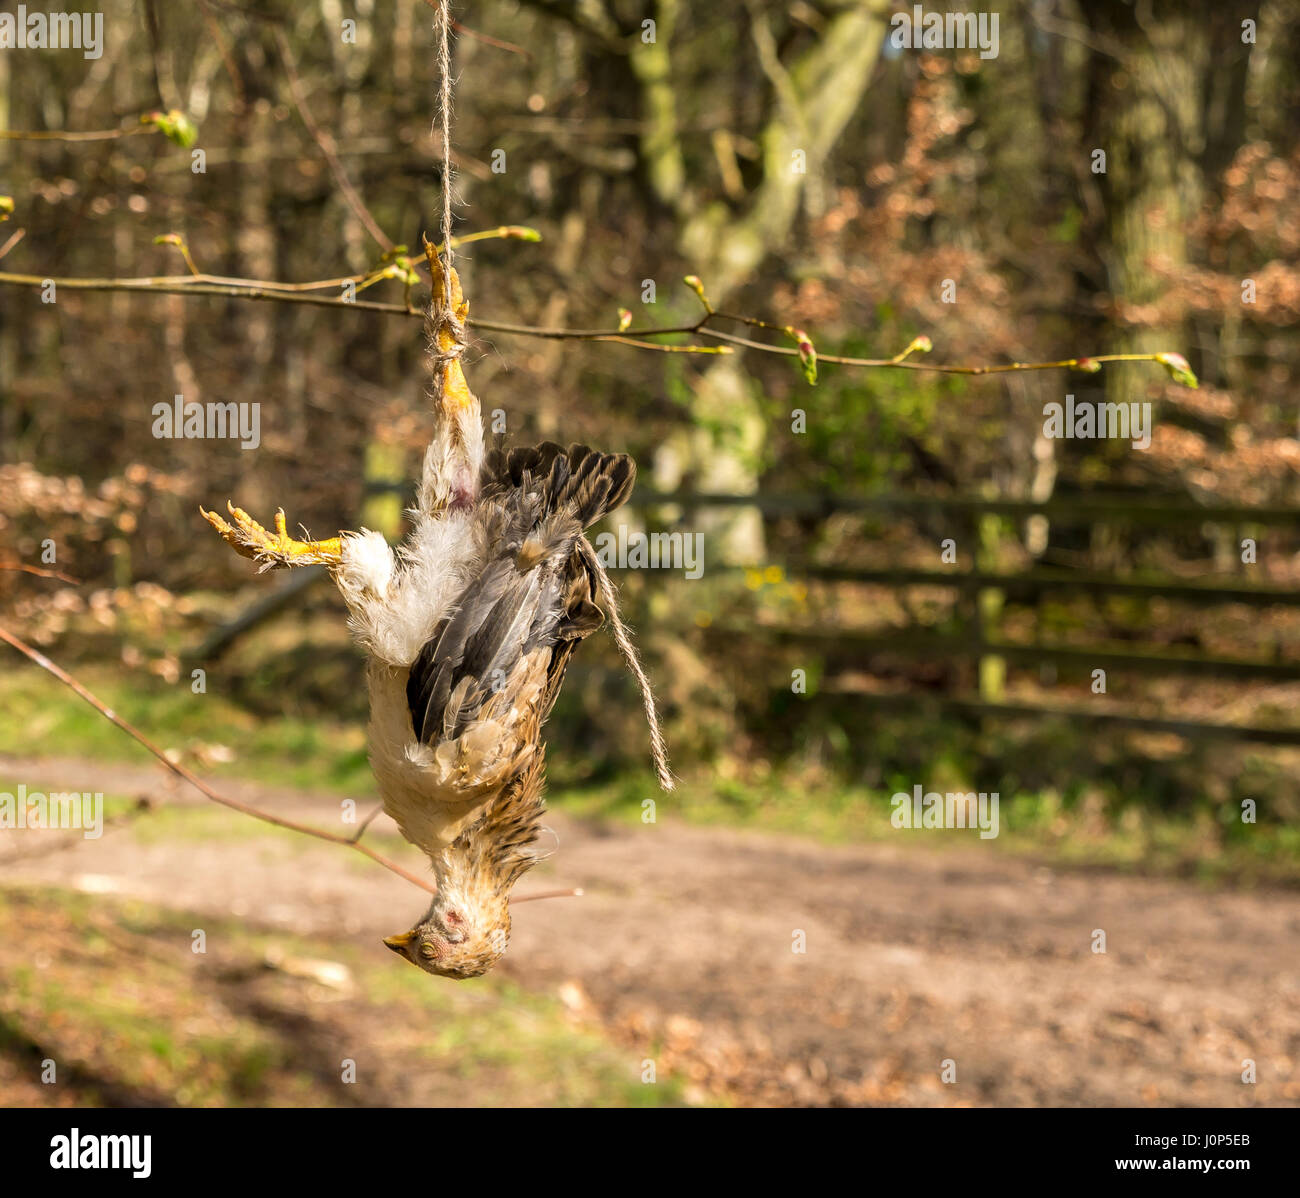 dead-chicken-hanging-upside-down-on-coun